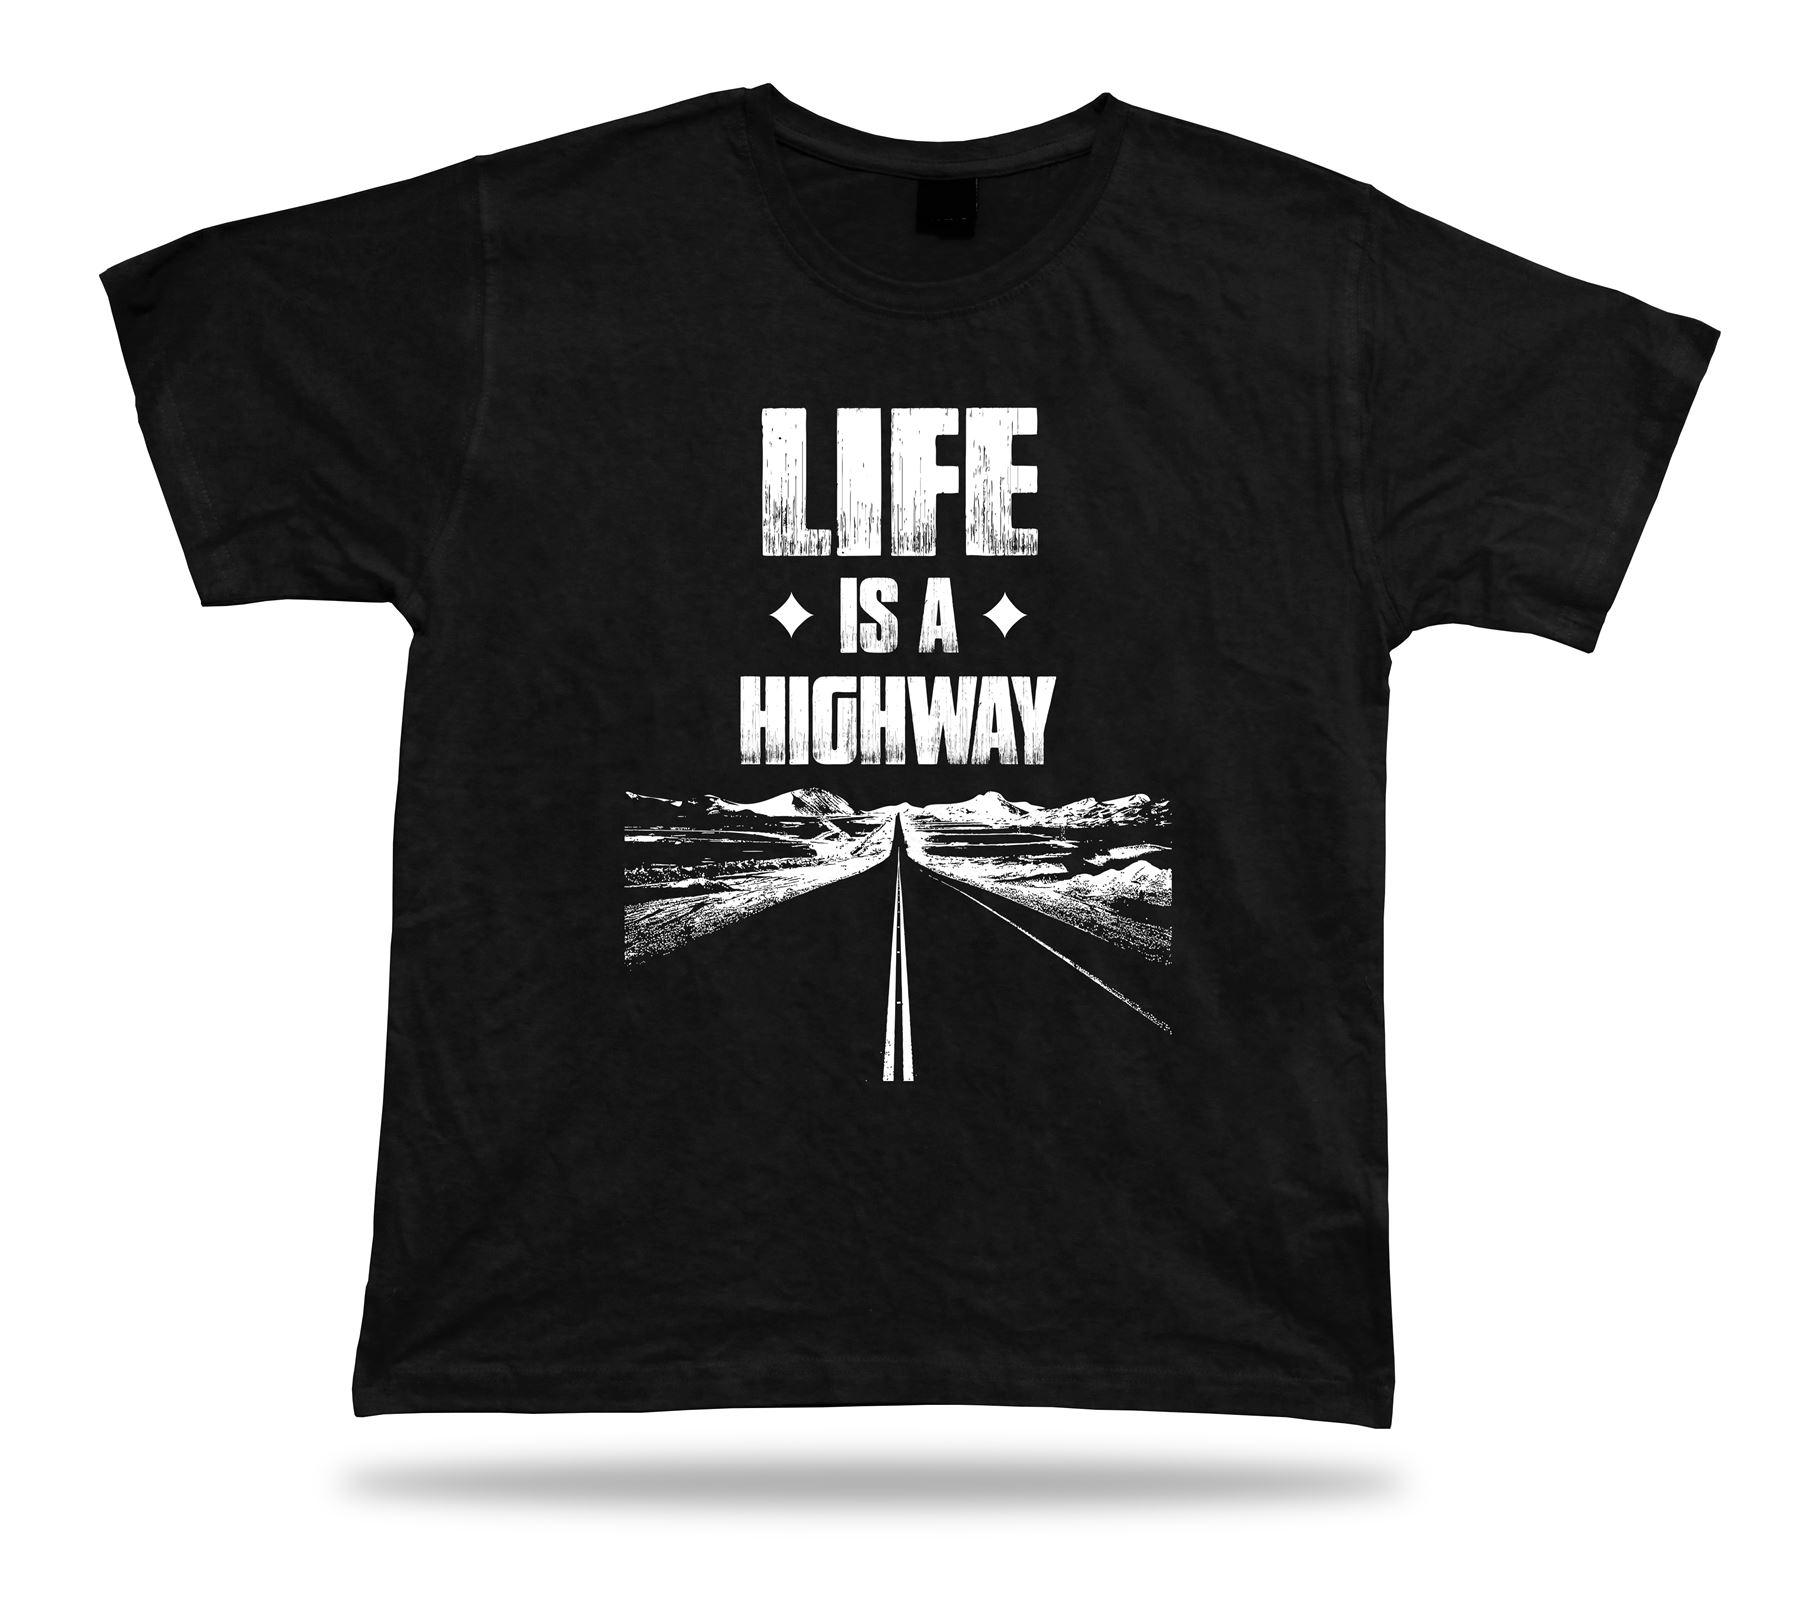 LIFE IS A HIGHWAY Route Sign road ride T shirt Comics Classic spiritual Apparel Cool Casual pride t shirt men Unisex